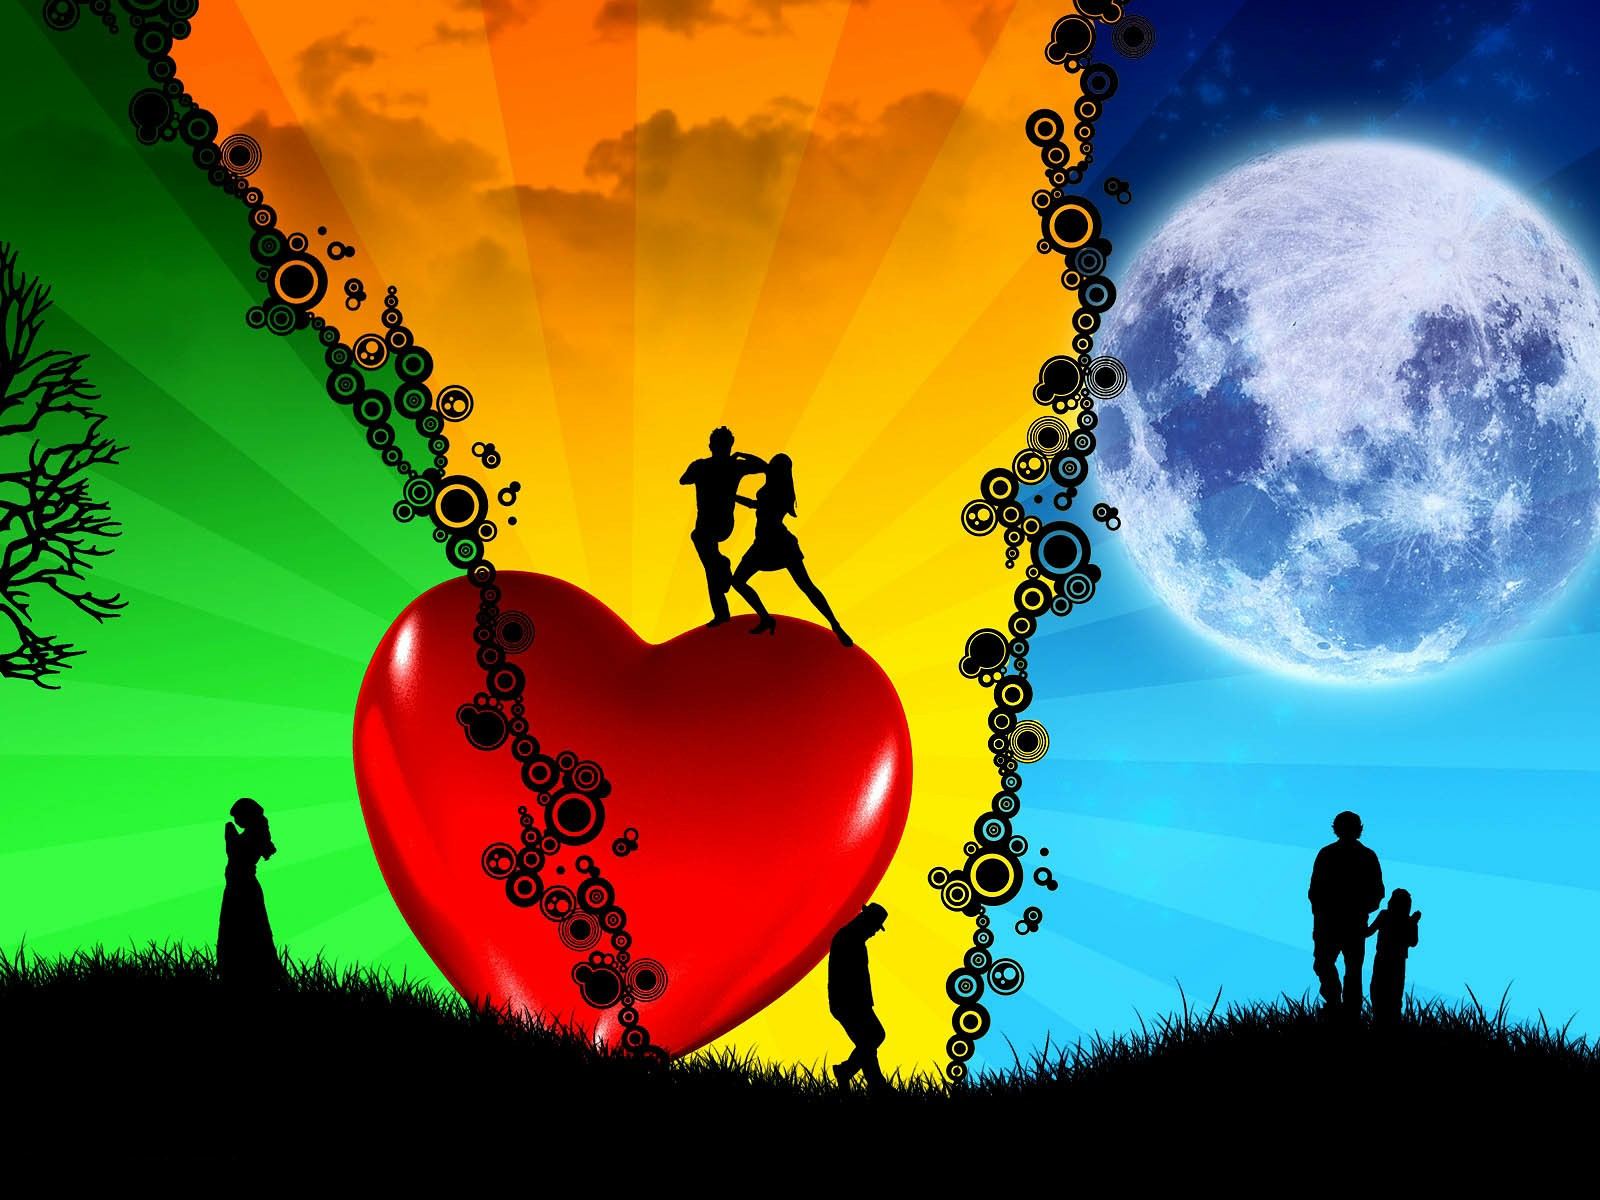 New Love Wallpapers 55 Wallpapers – Adorable Wallpapers